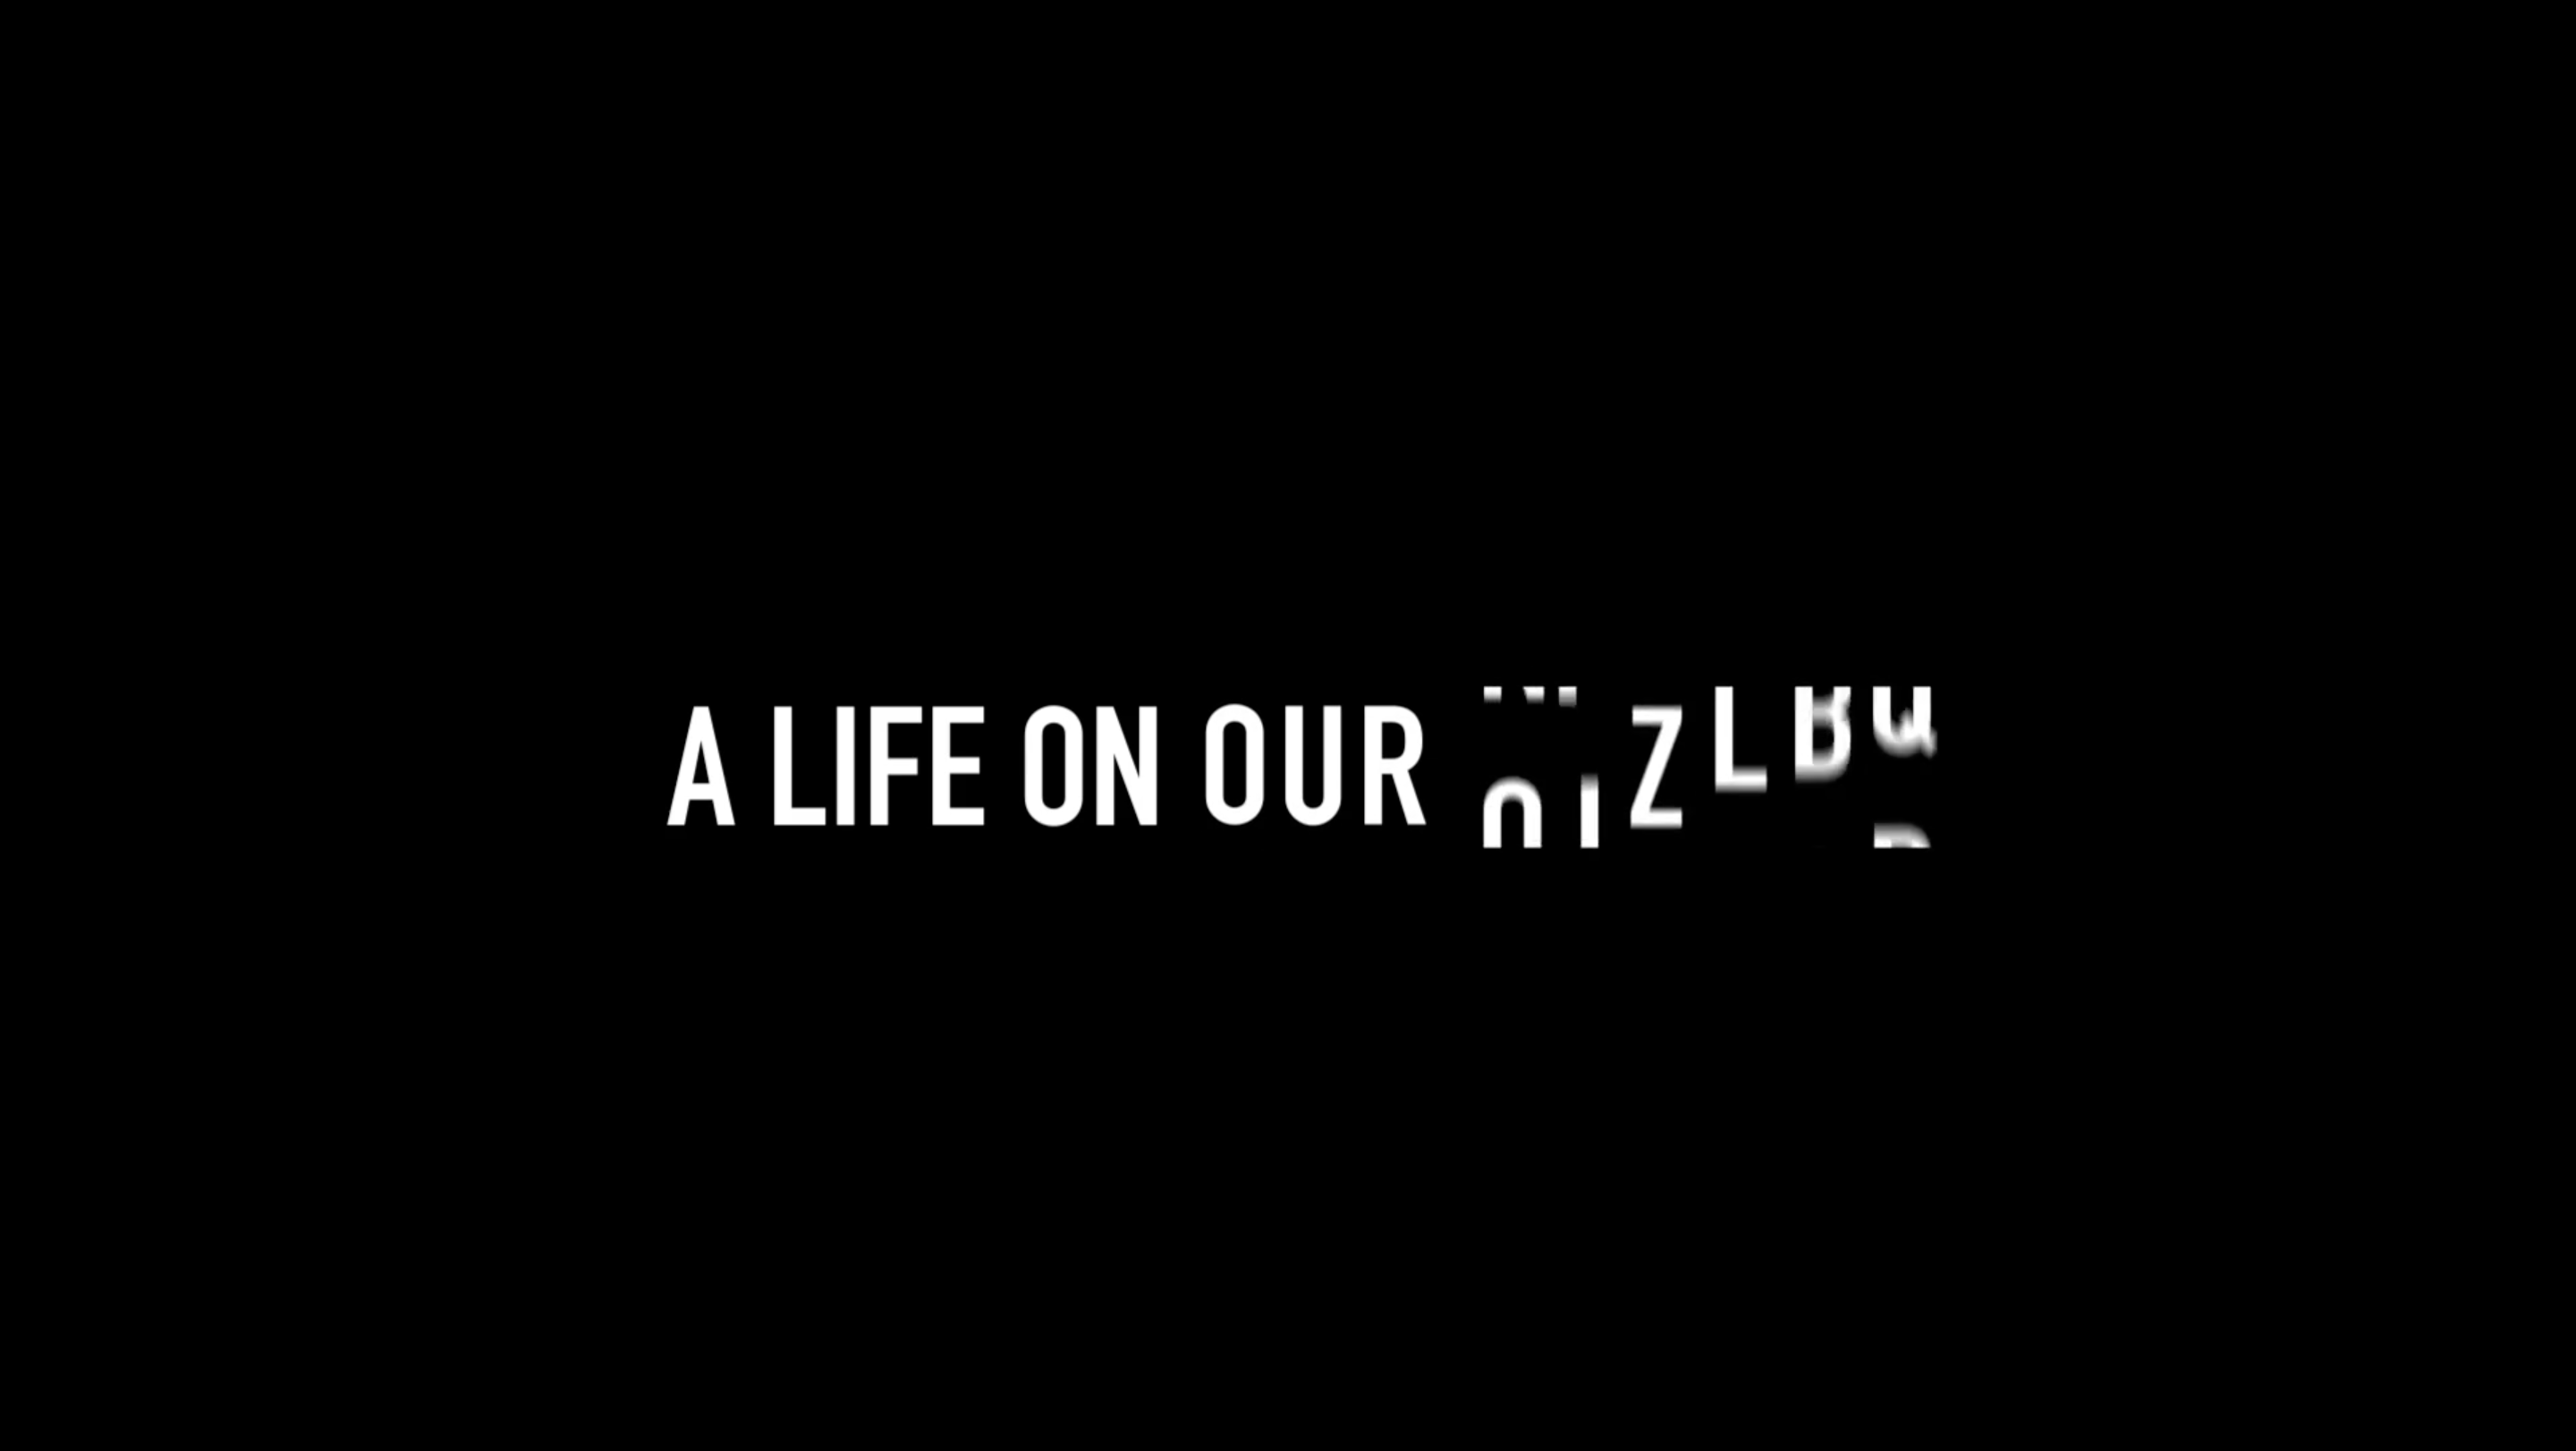 """""""A Life on The Earth"""" in bold white text on a black background."""